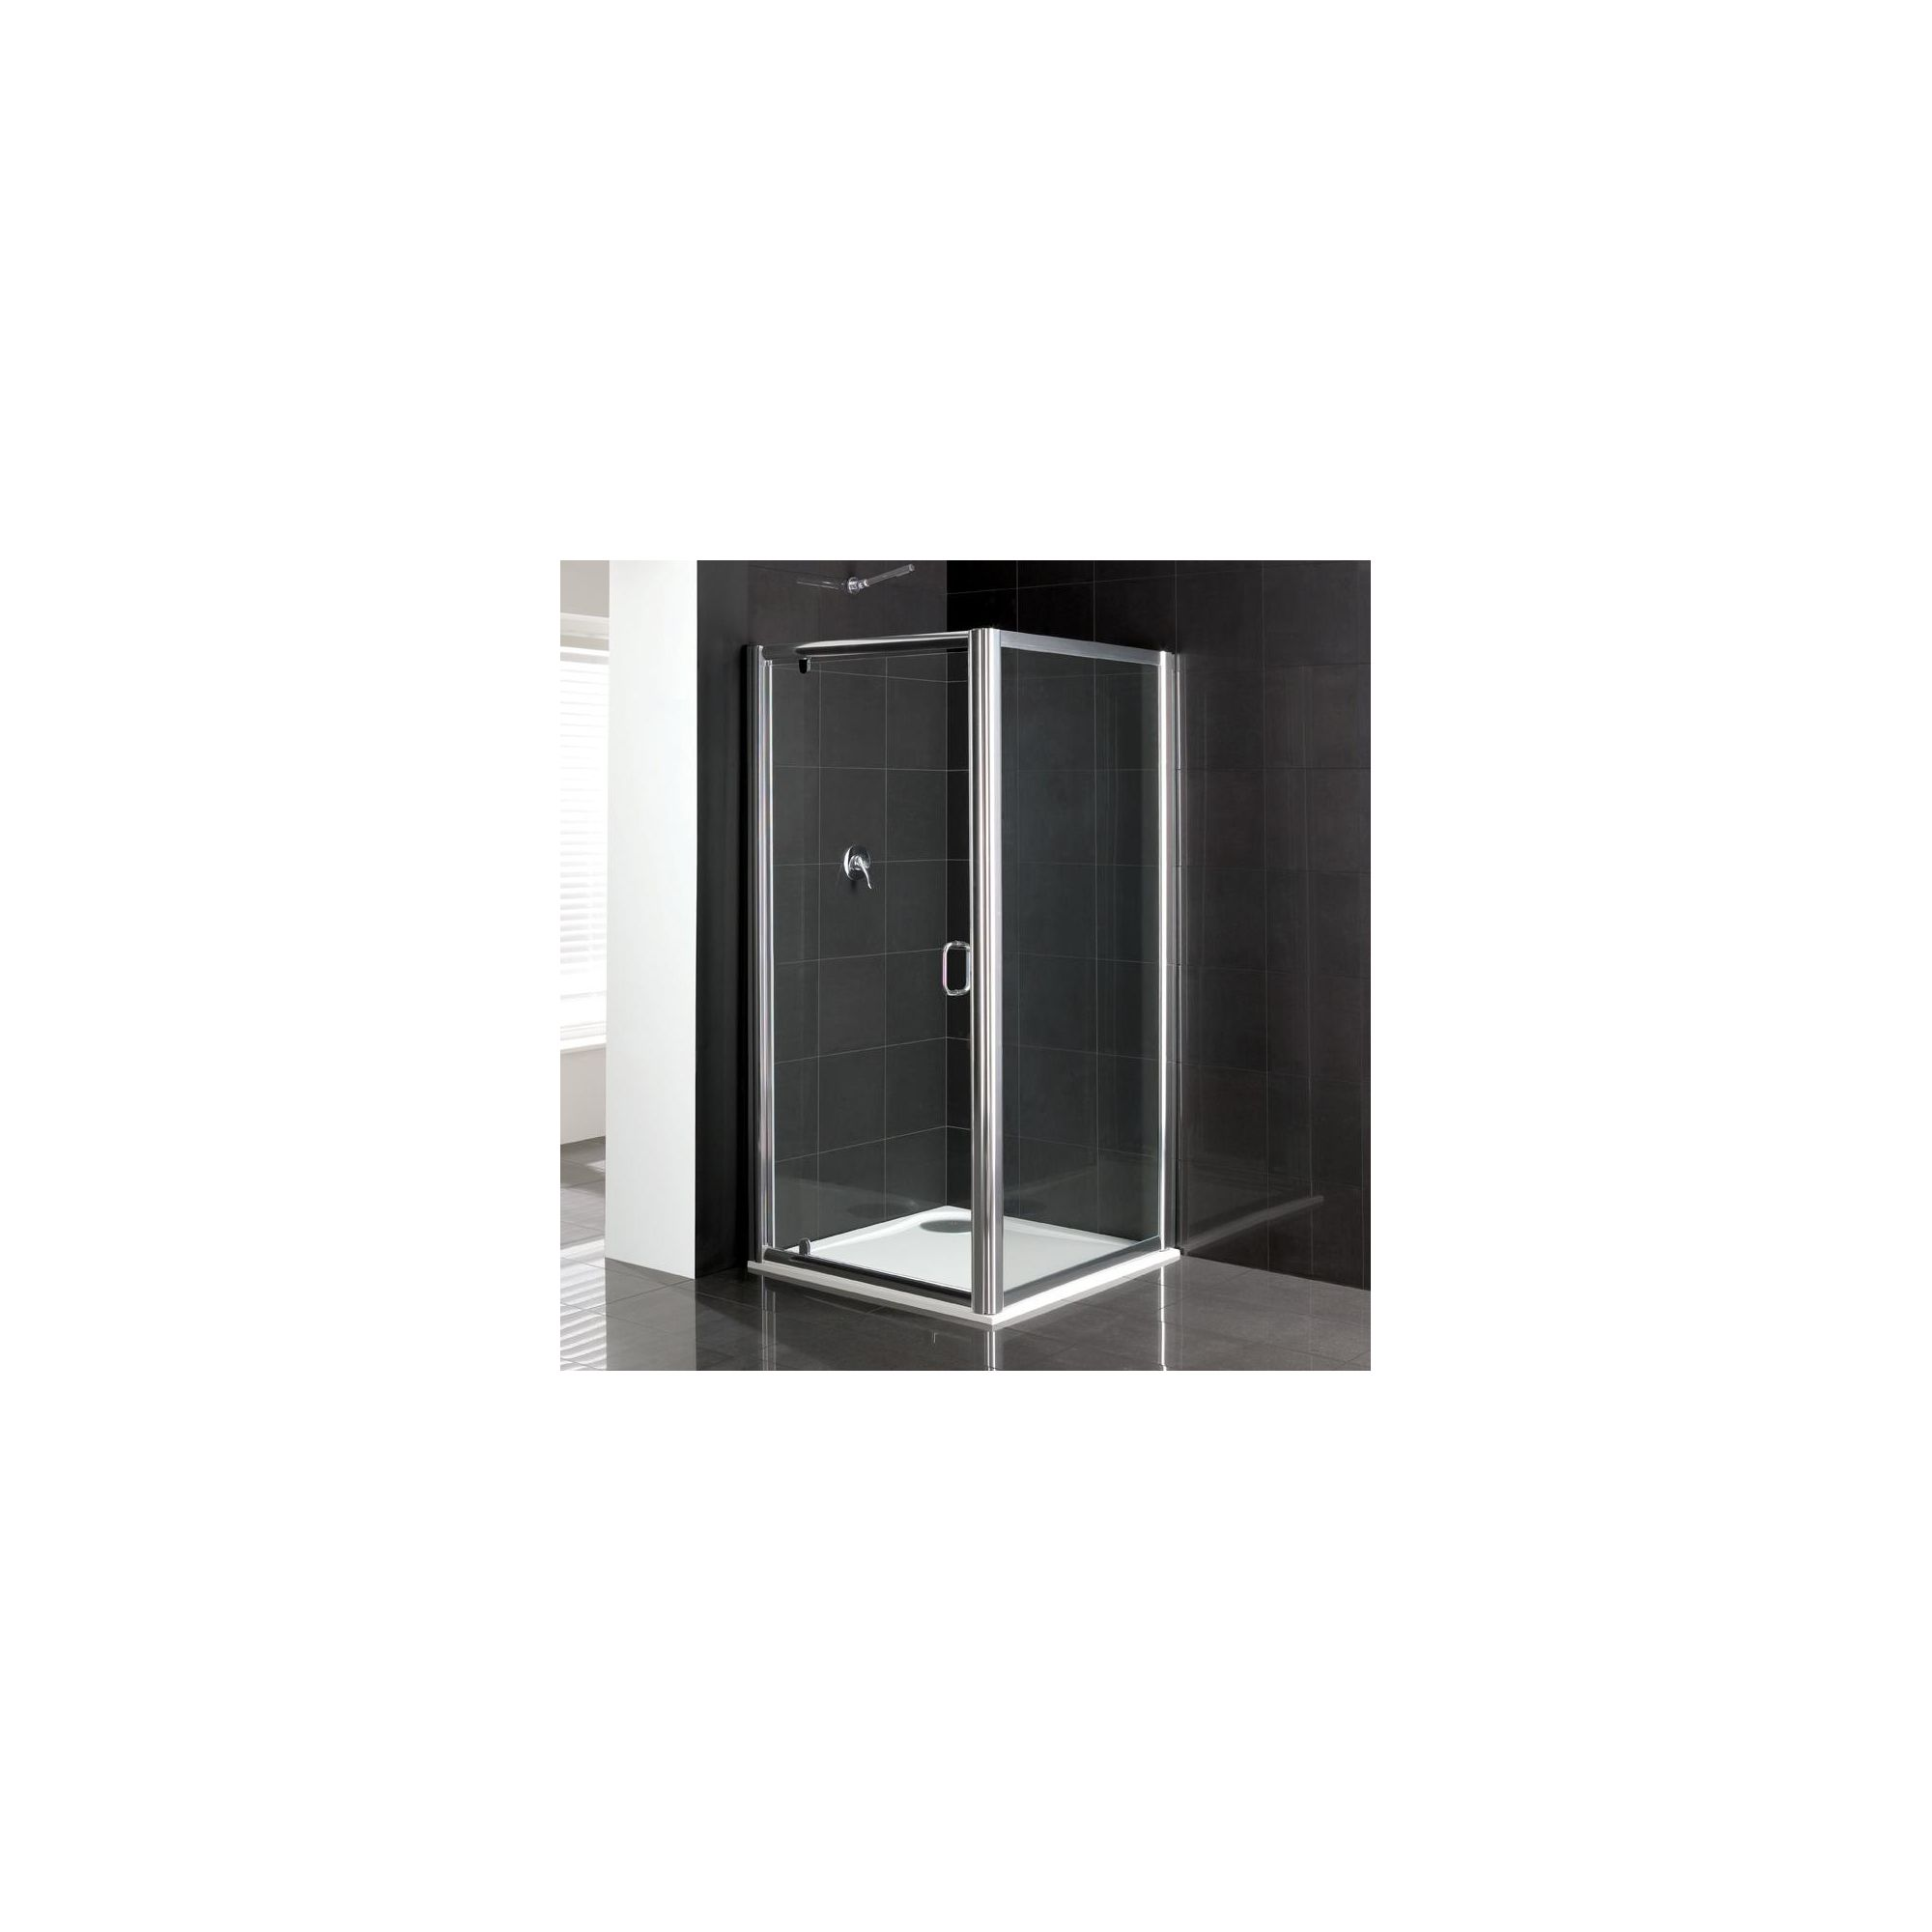 Duchy Elite Silver Pivot Door Shower Enclosure, 800mm x 800mm, Standard Tray, 6mm Glass at Tesco Direct